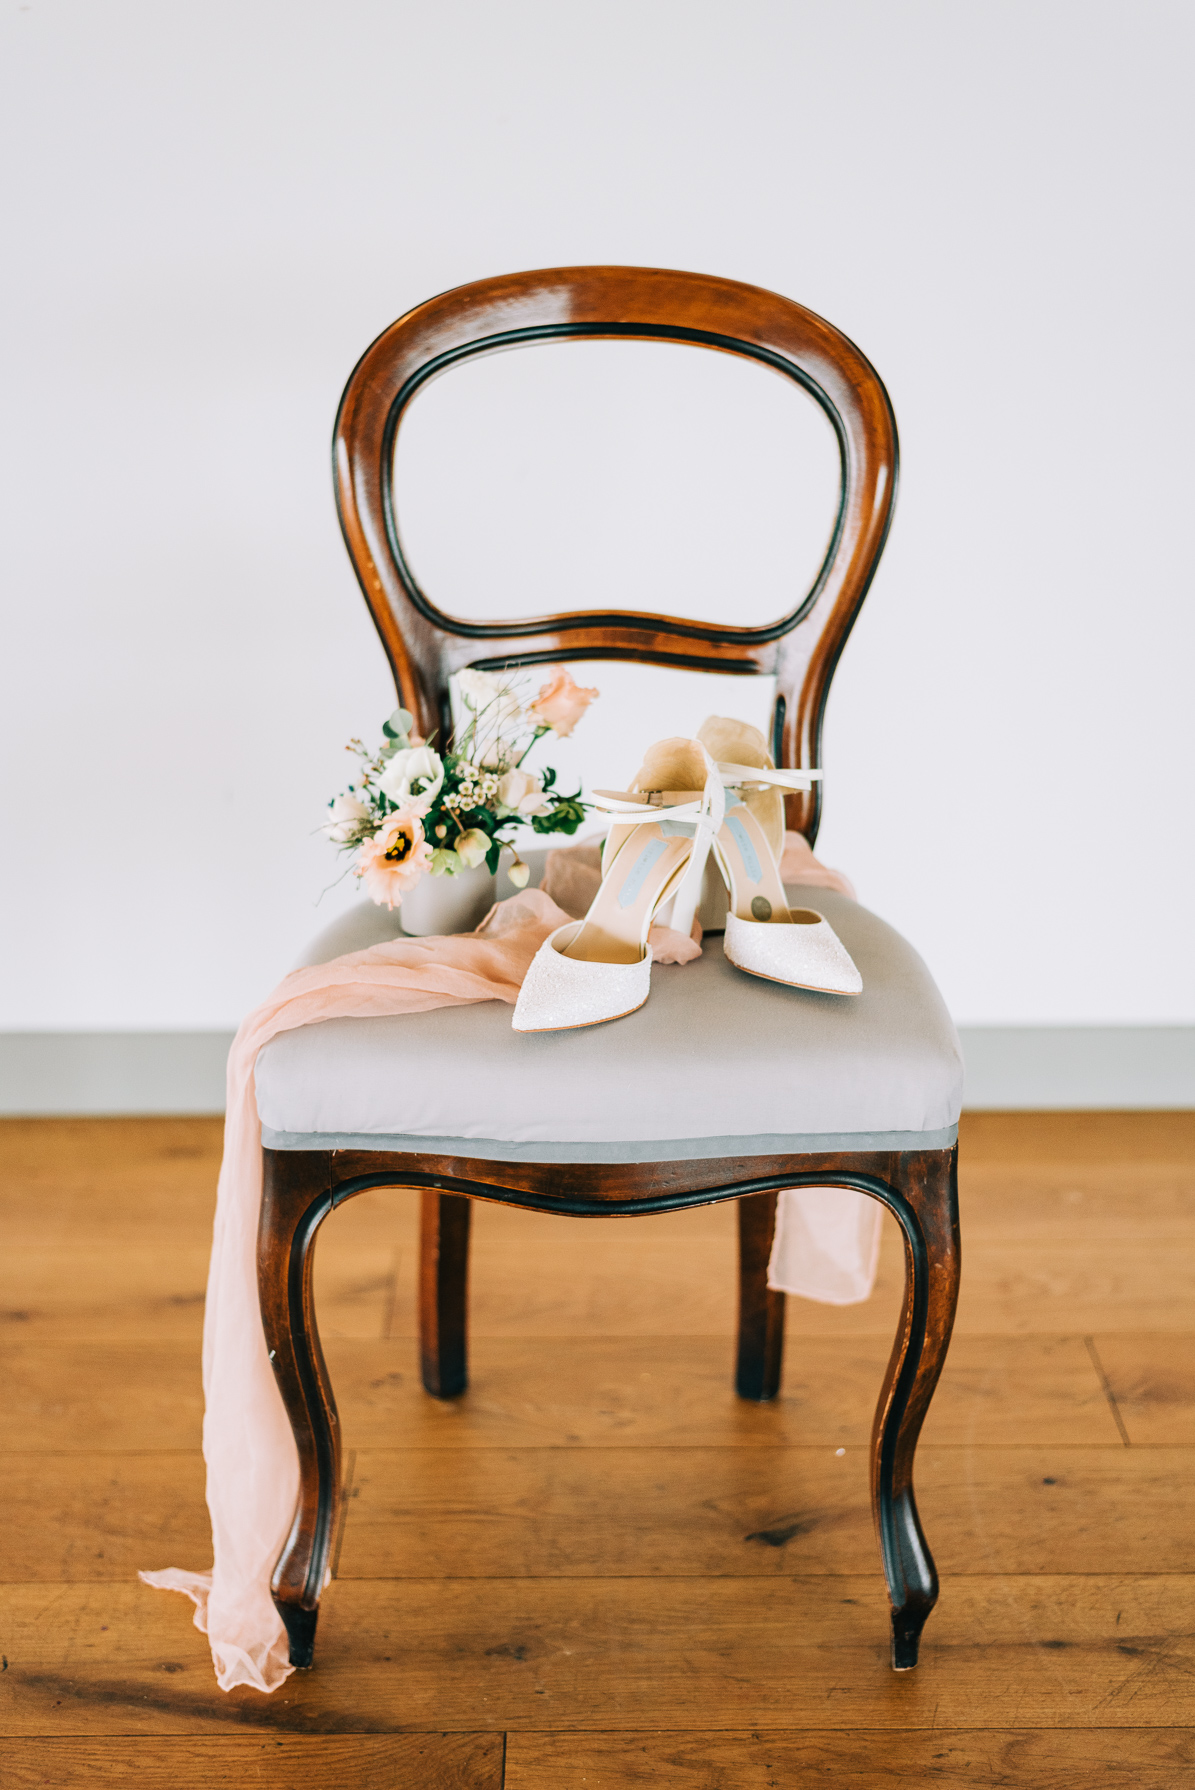 white wedding shoes and play peach silk ribbon on a blue and dark wood chair